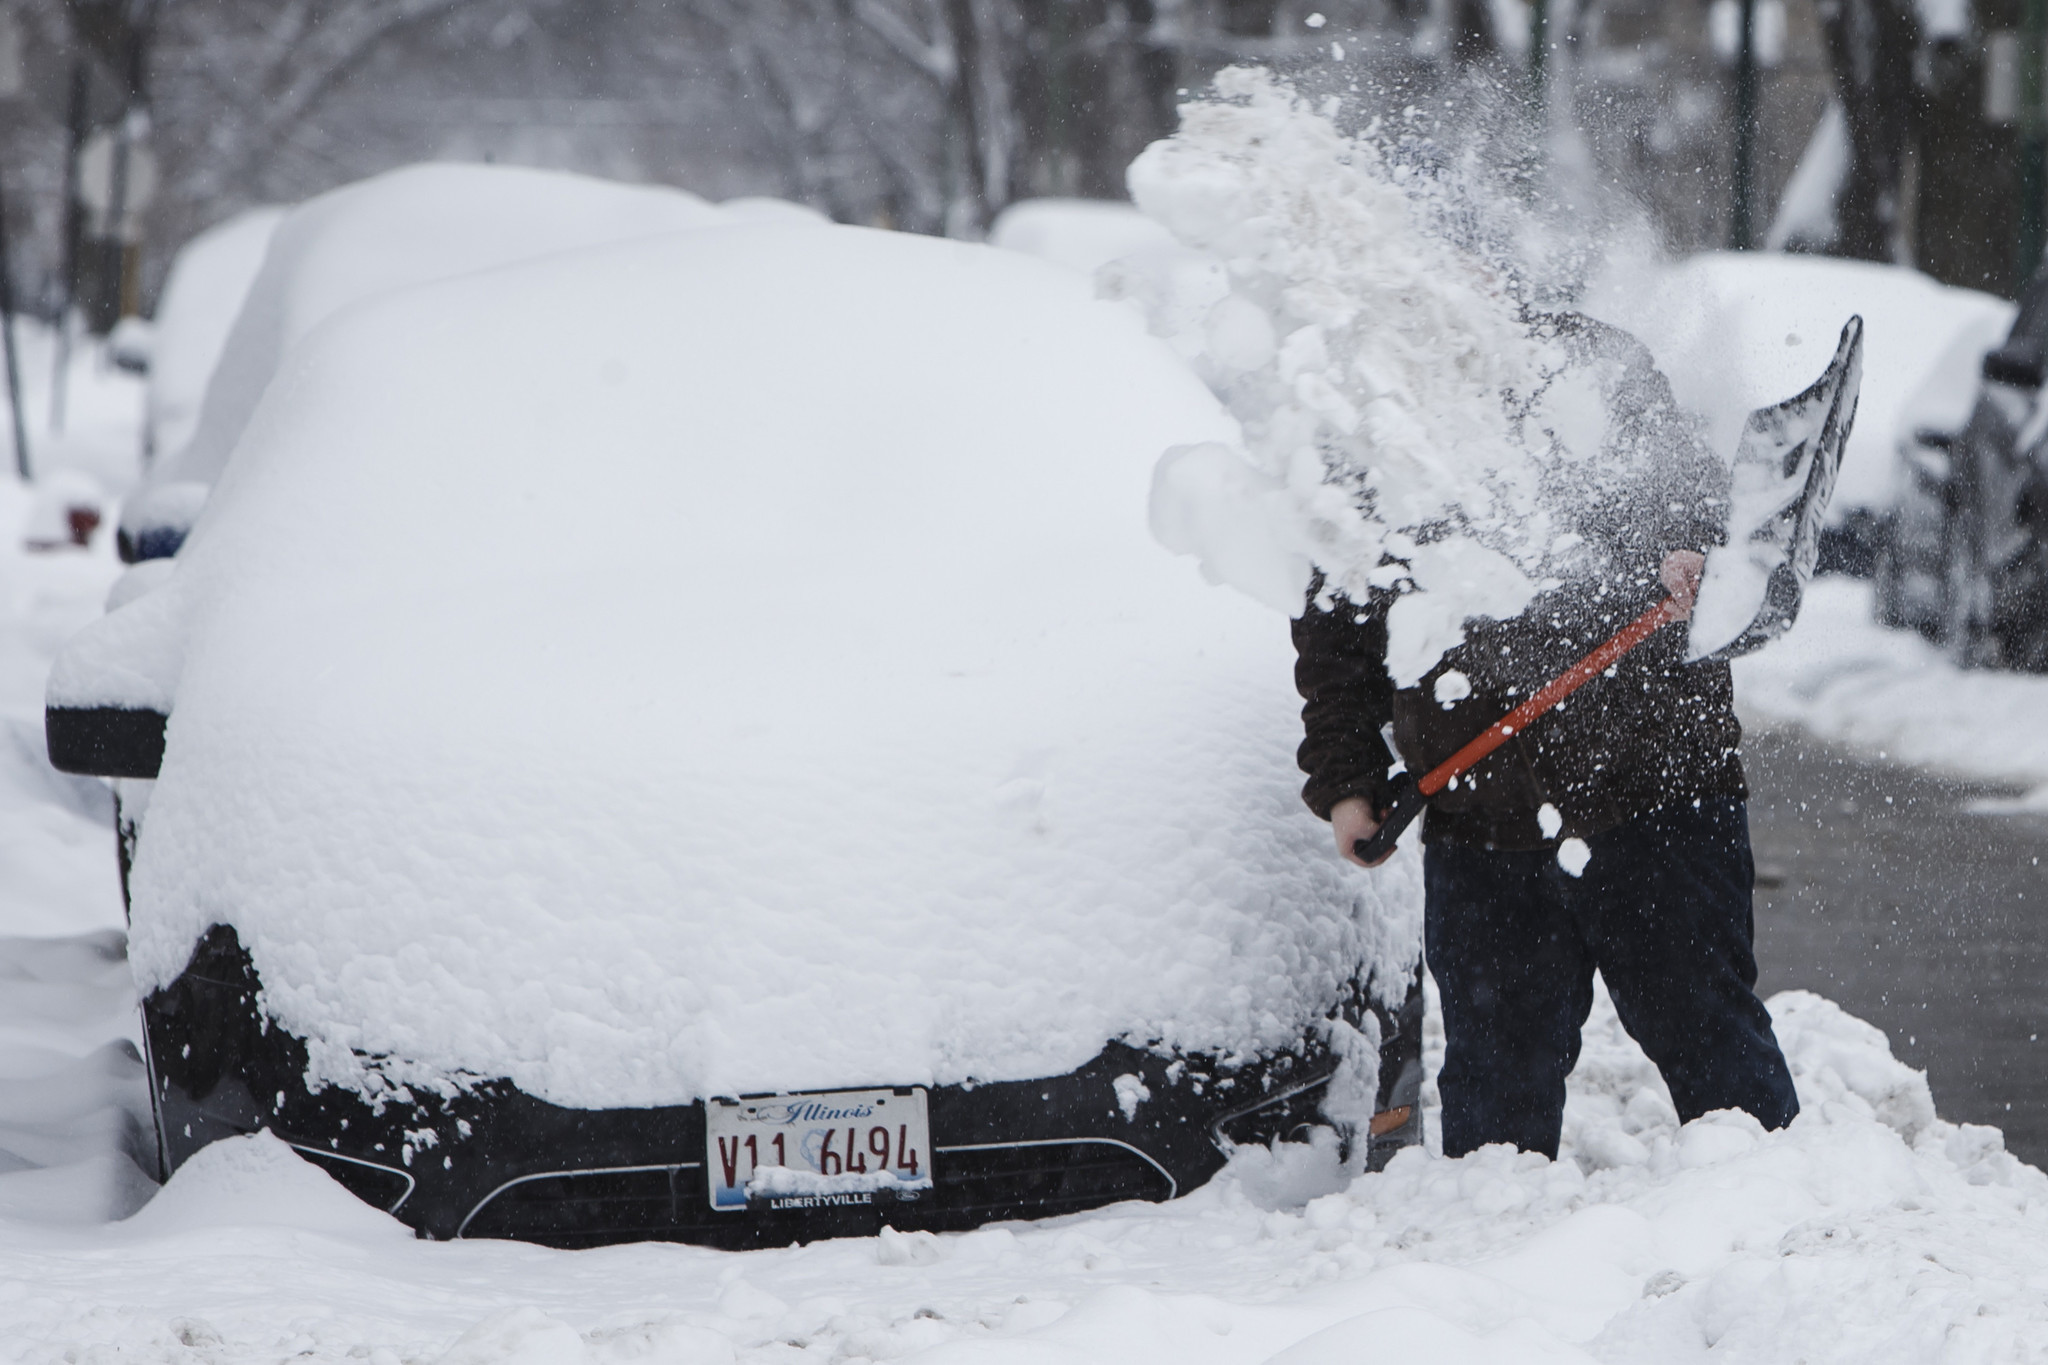 How To Get Your Car Unstuck From Snow Chicago Tribune